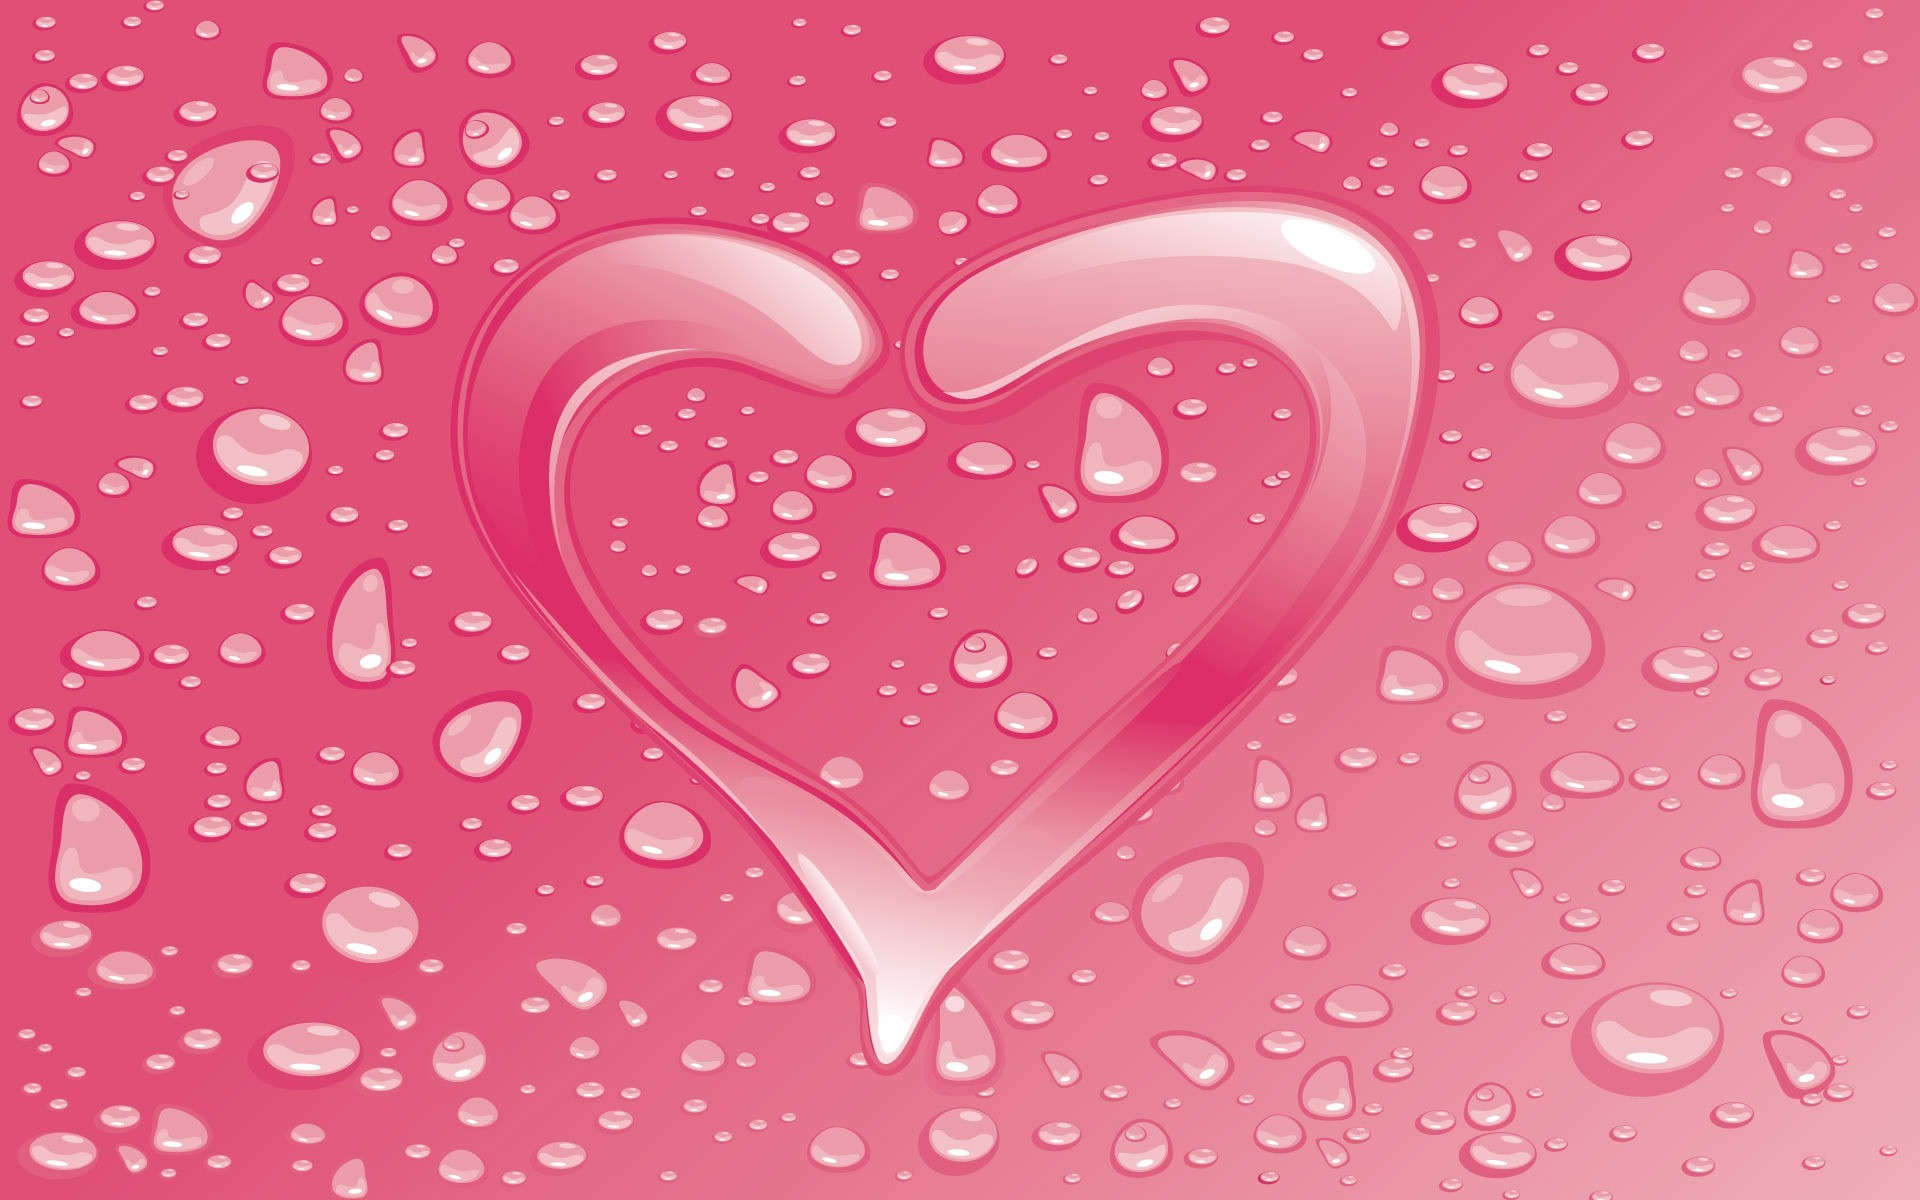 Valentine High Resolution Wallpaper For Desktop Background 1920x1200